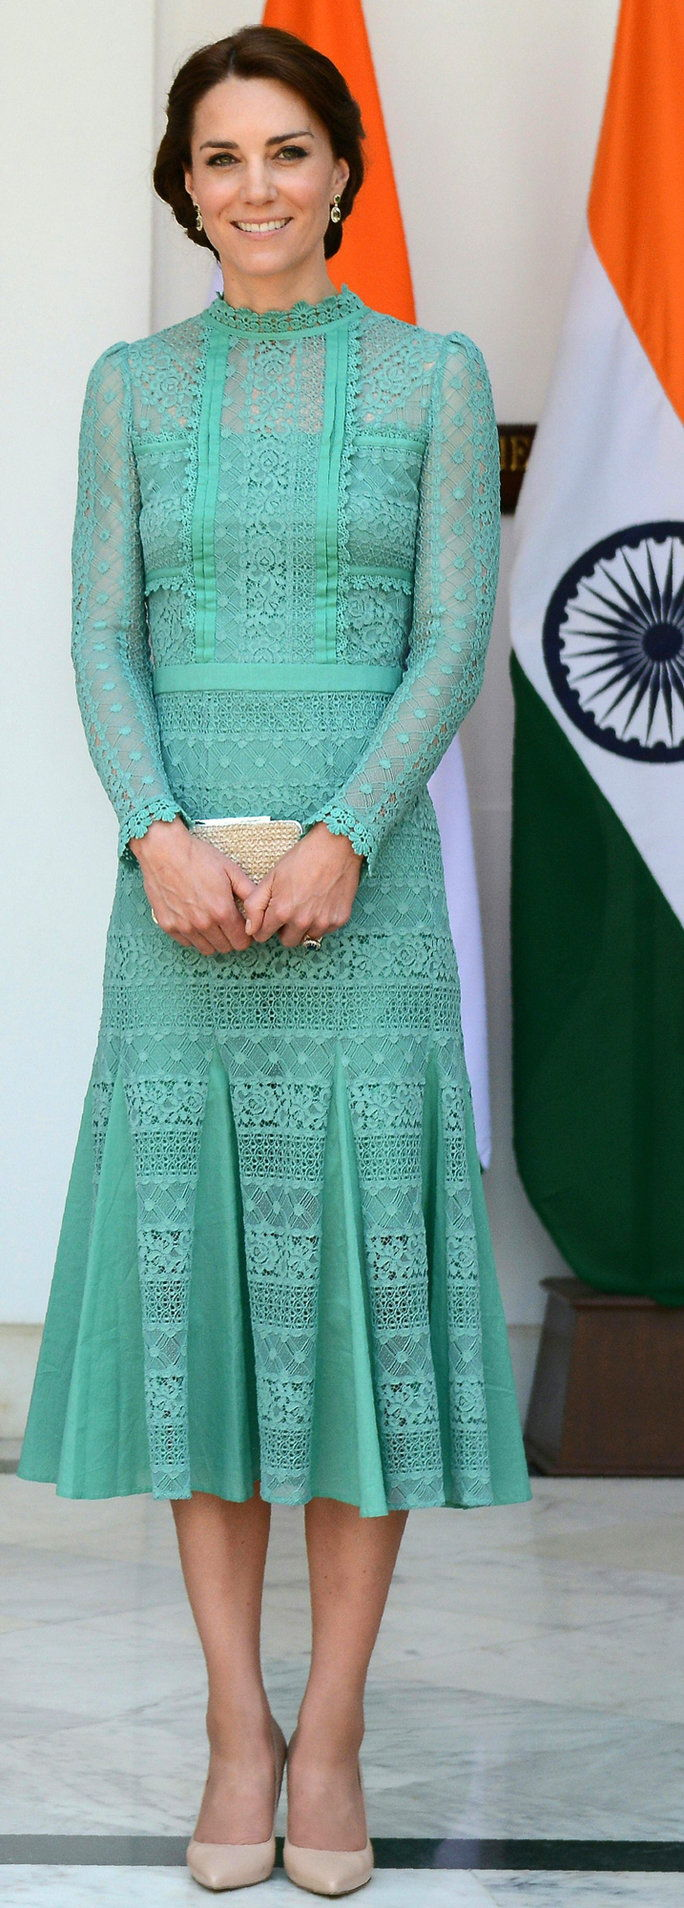 英国's Catherine, Duchess of Cambridge looks on ahead of a lunch event with India's Prime Minister Narendra Modi at Hyderabad House in New Delhi on April 12, 2016.